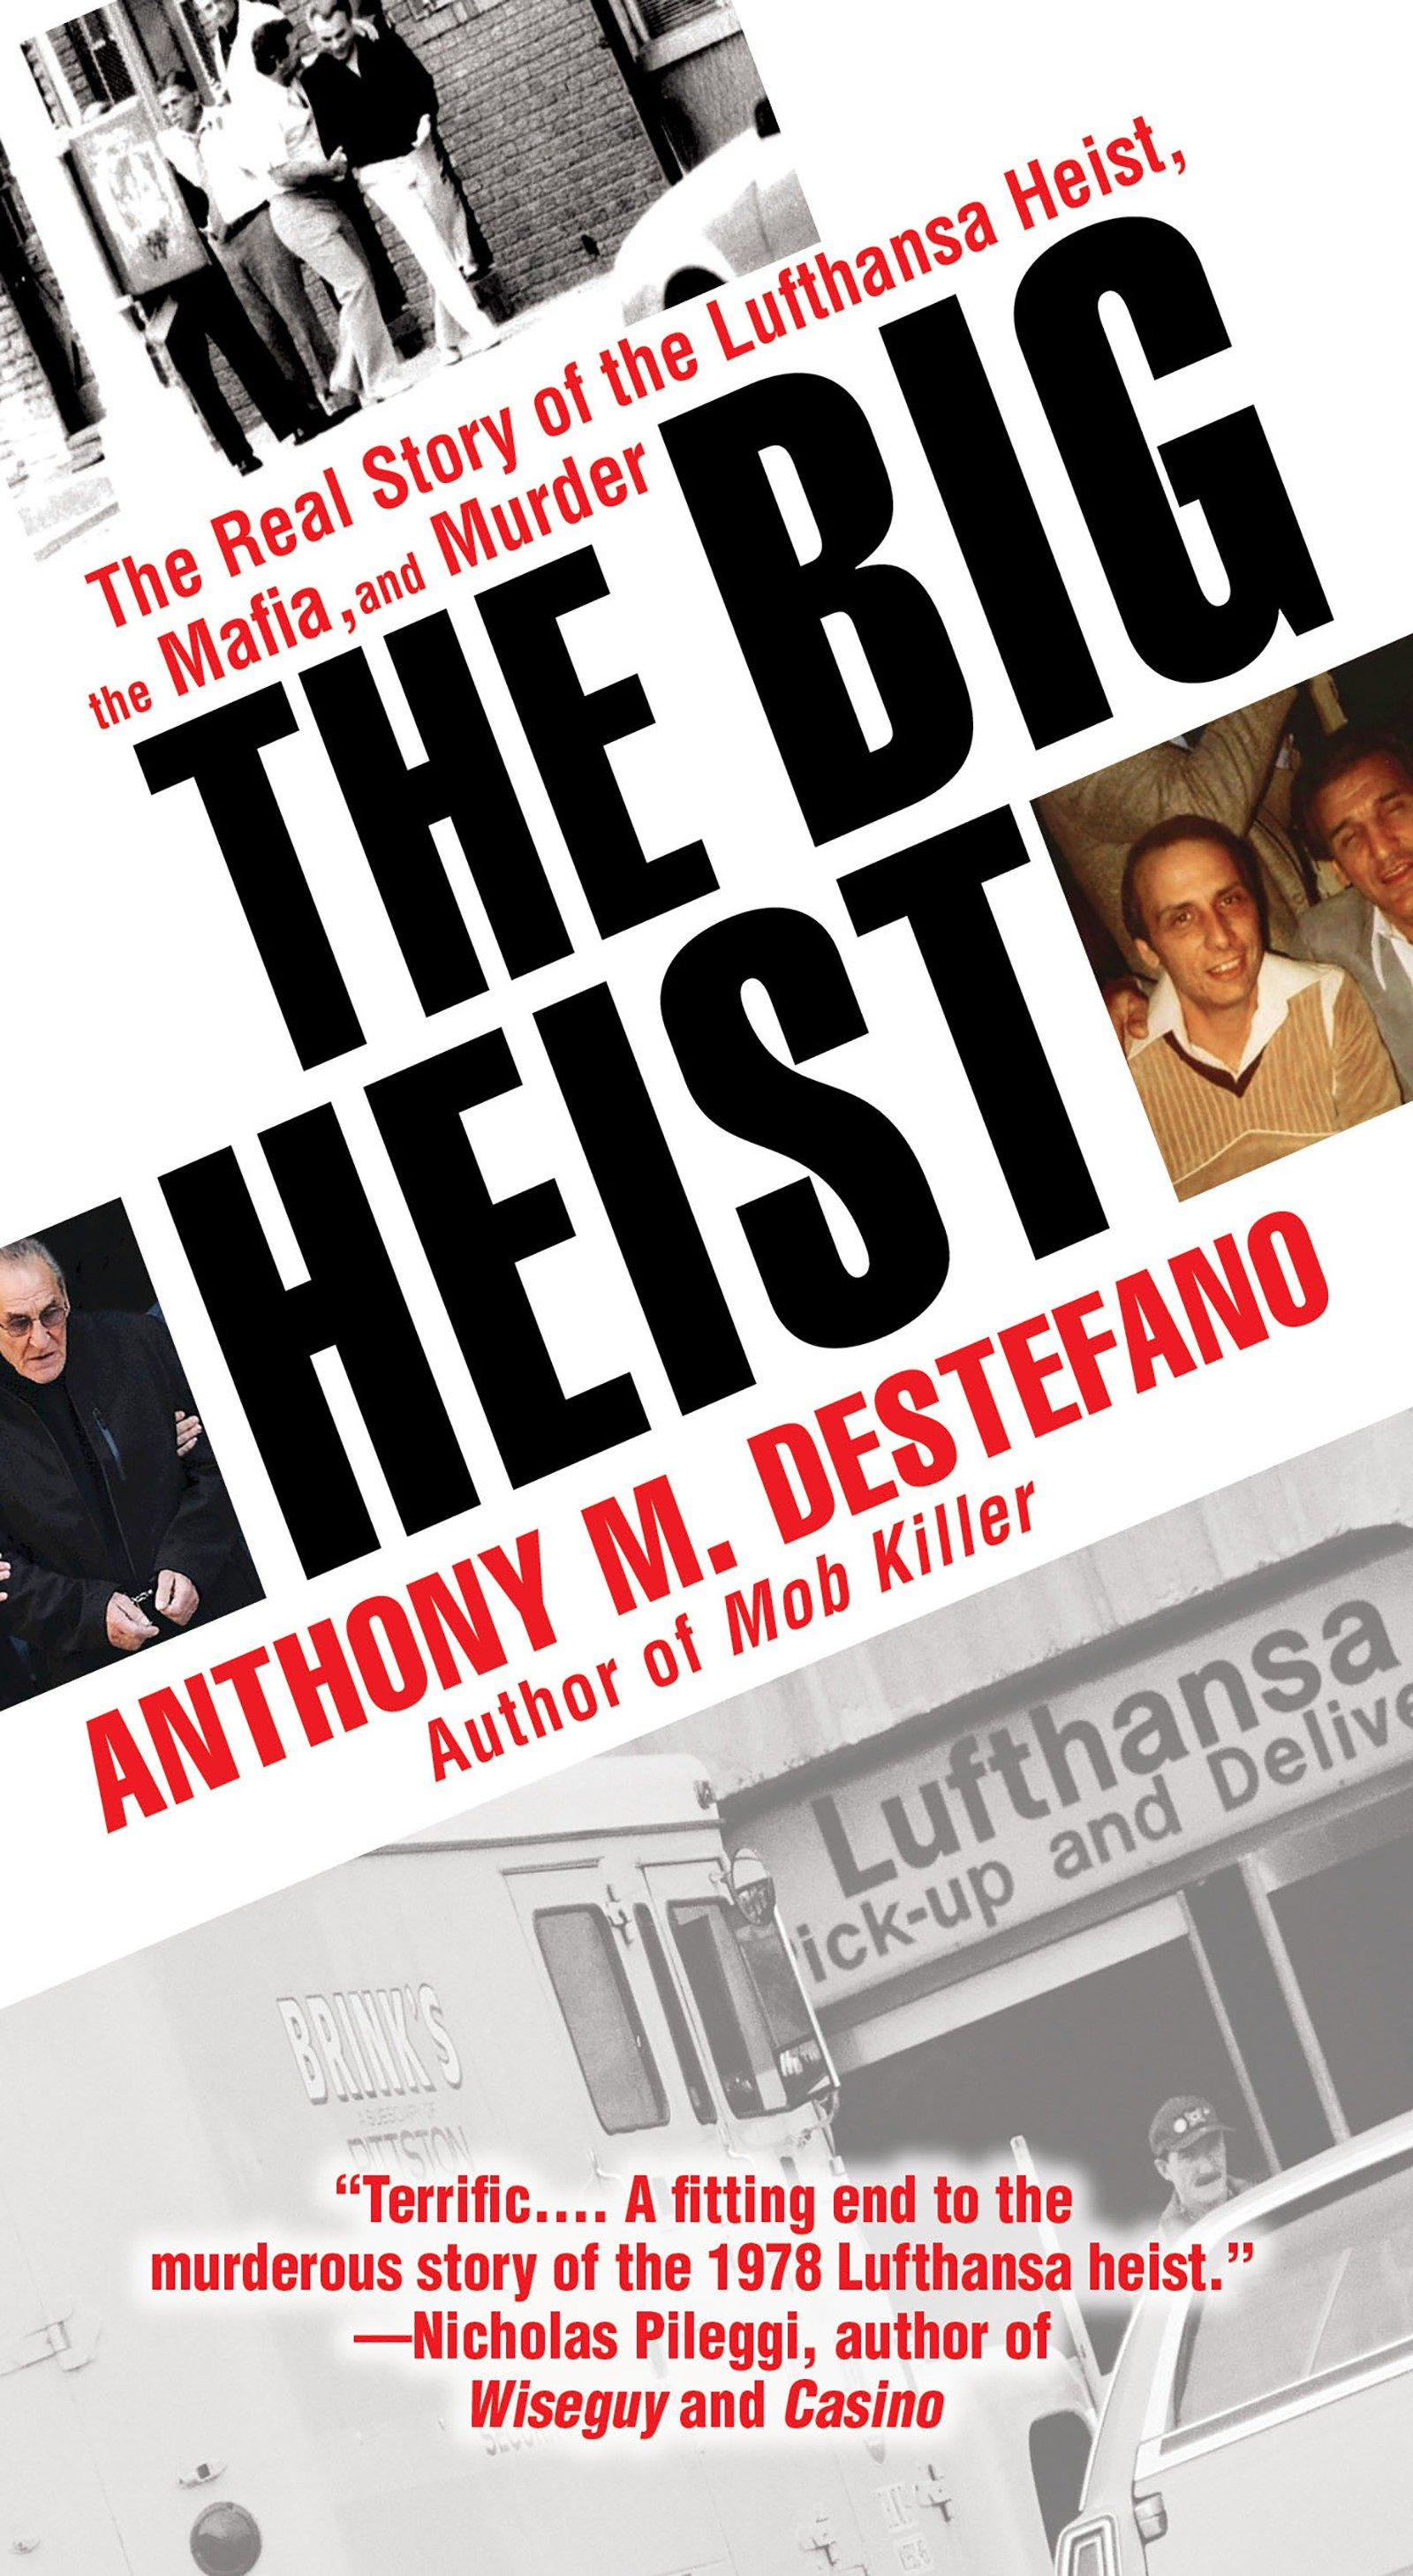 The Big Heist The Real Story of the Lufthansa Heist, the Mafia, and Murder